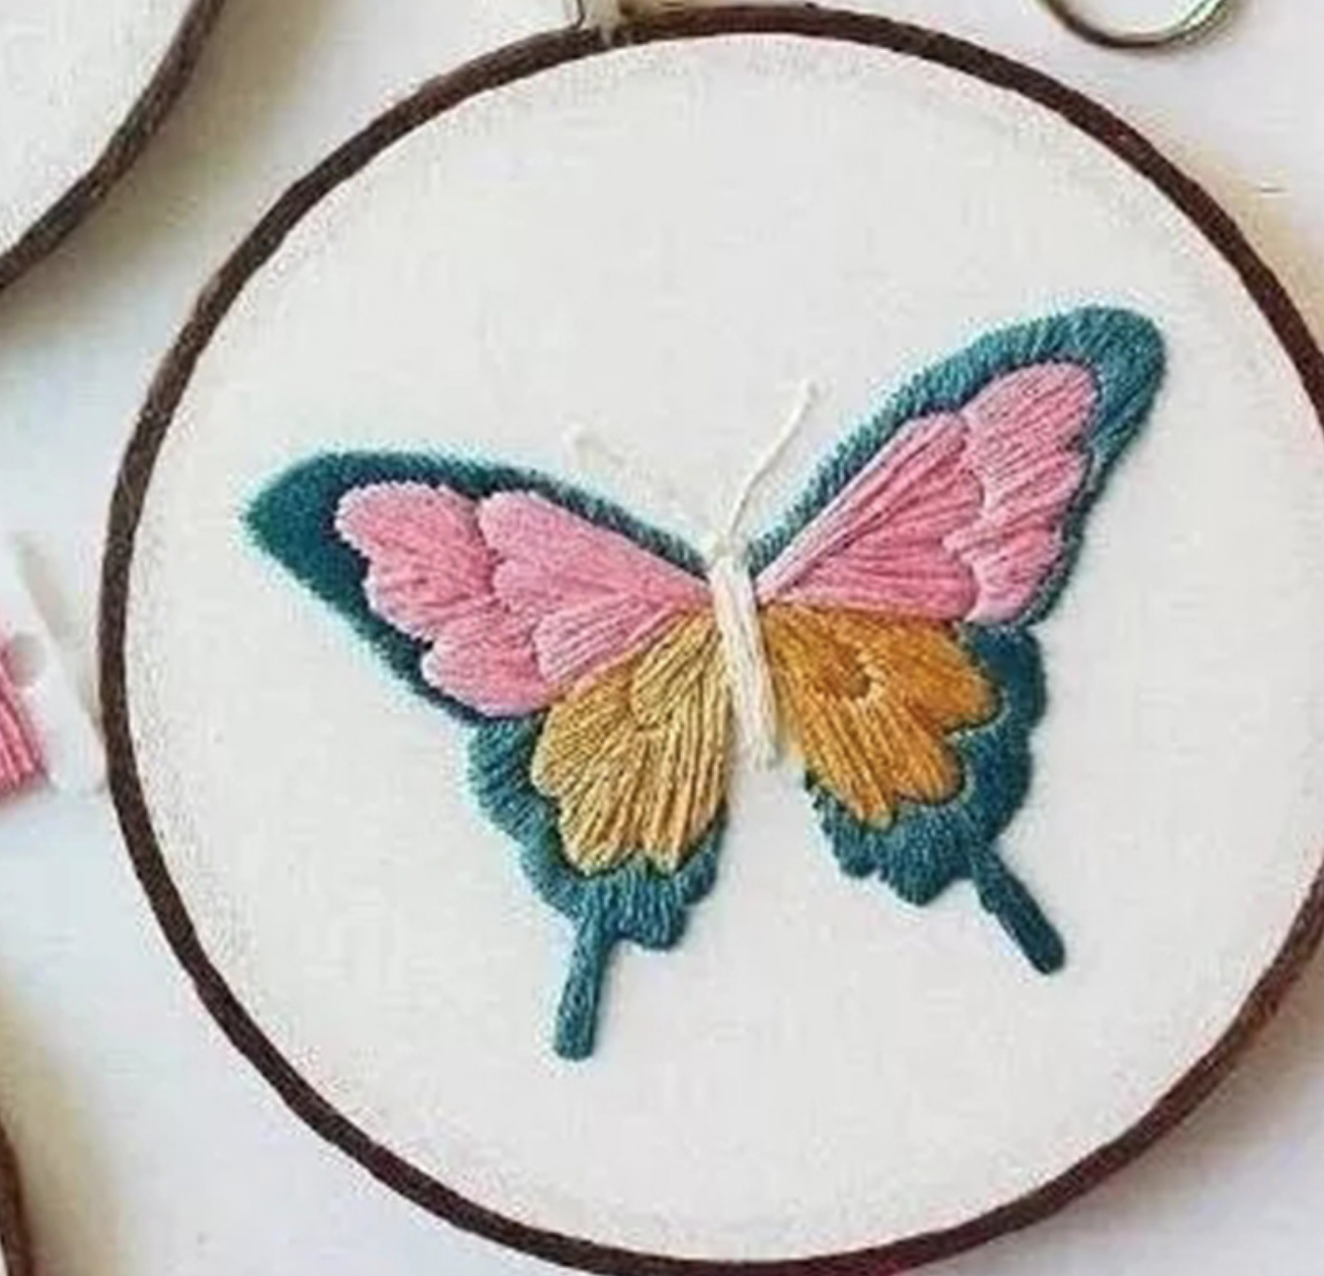 Teal/Pink Butterfly Embroidery